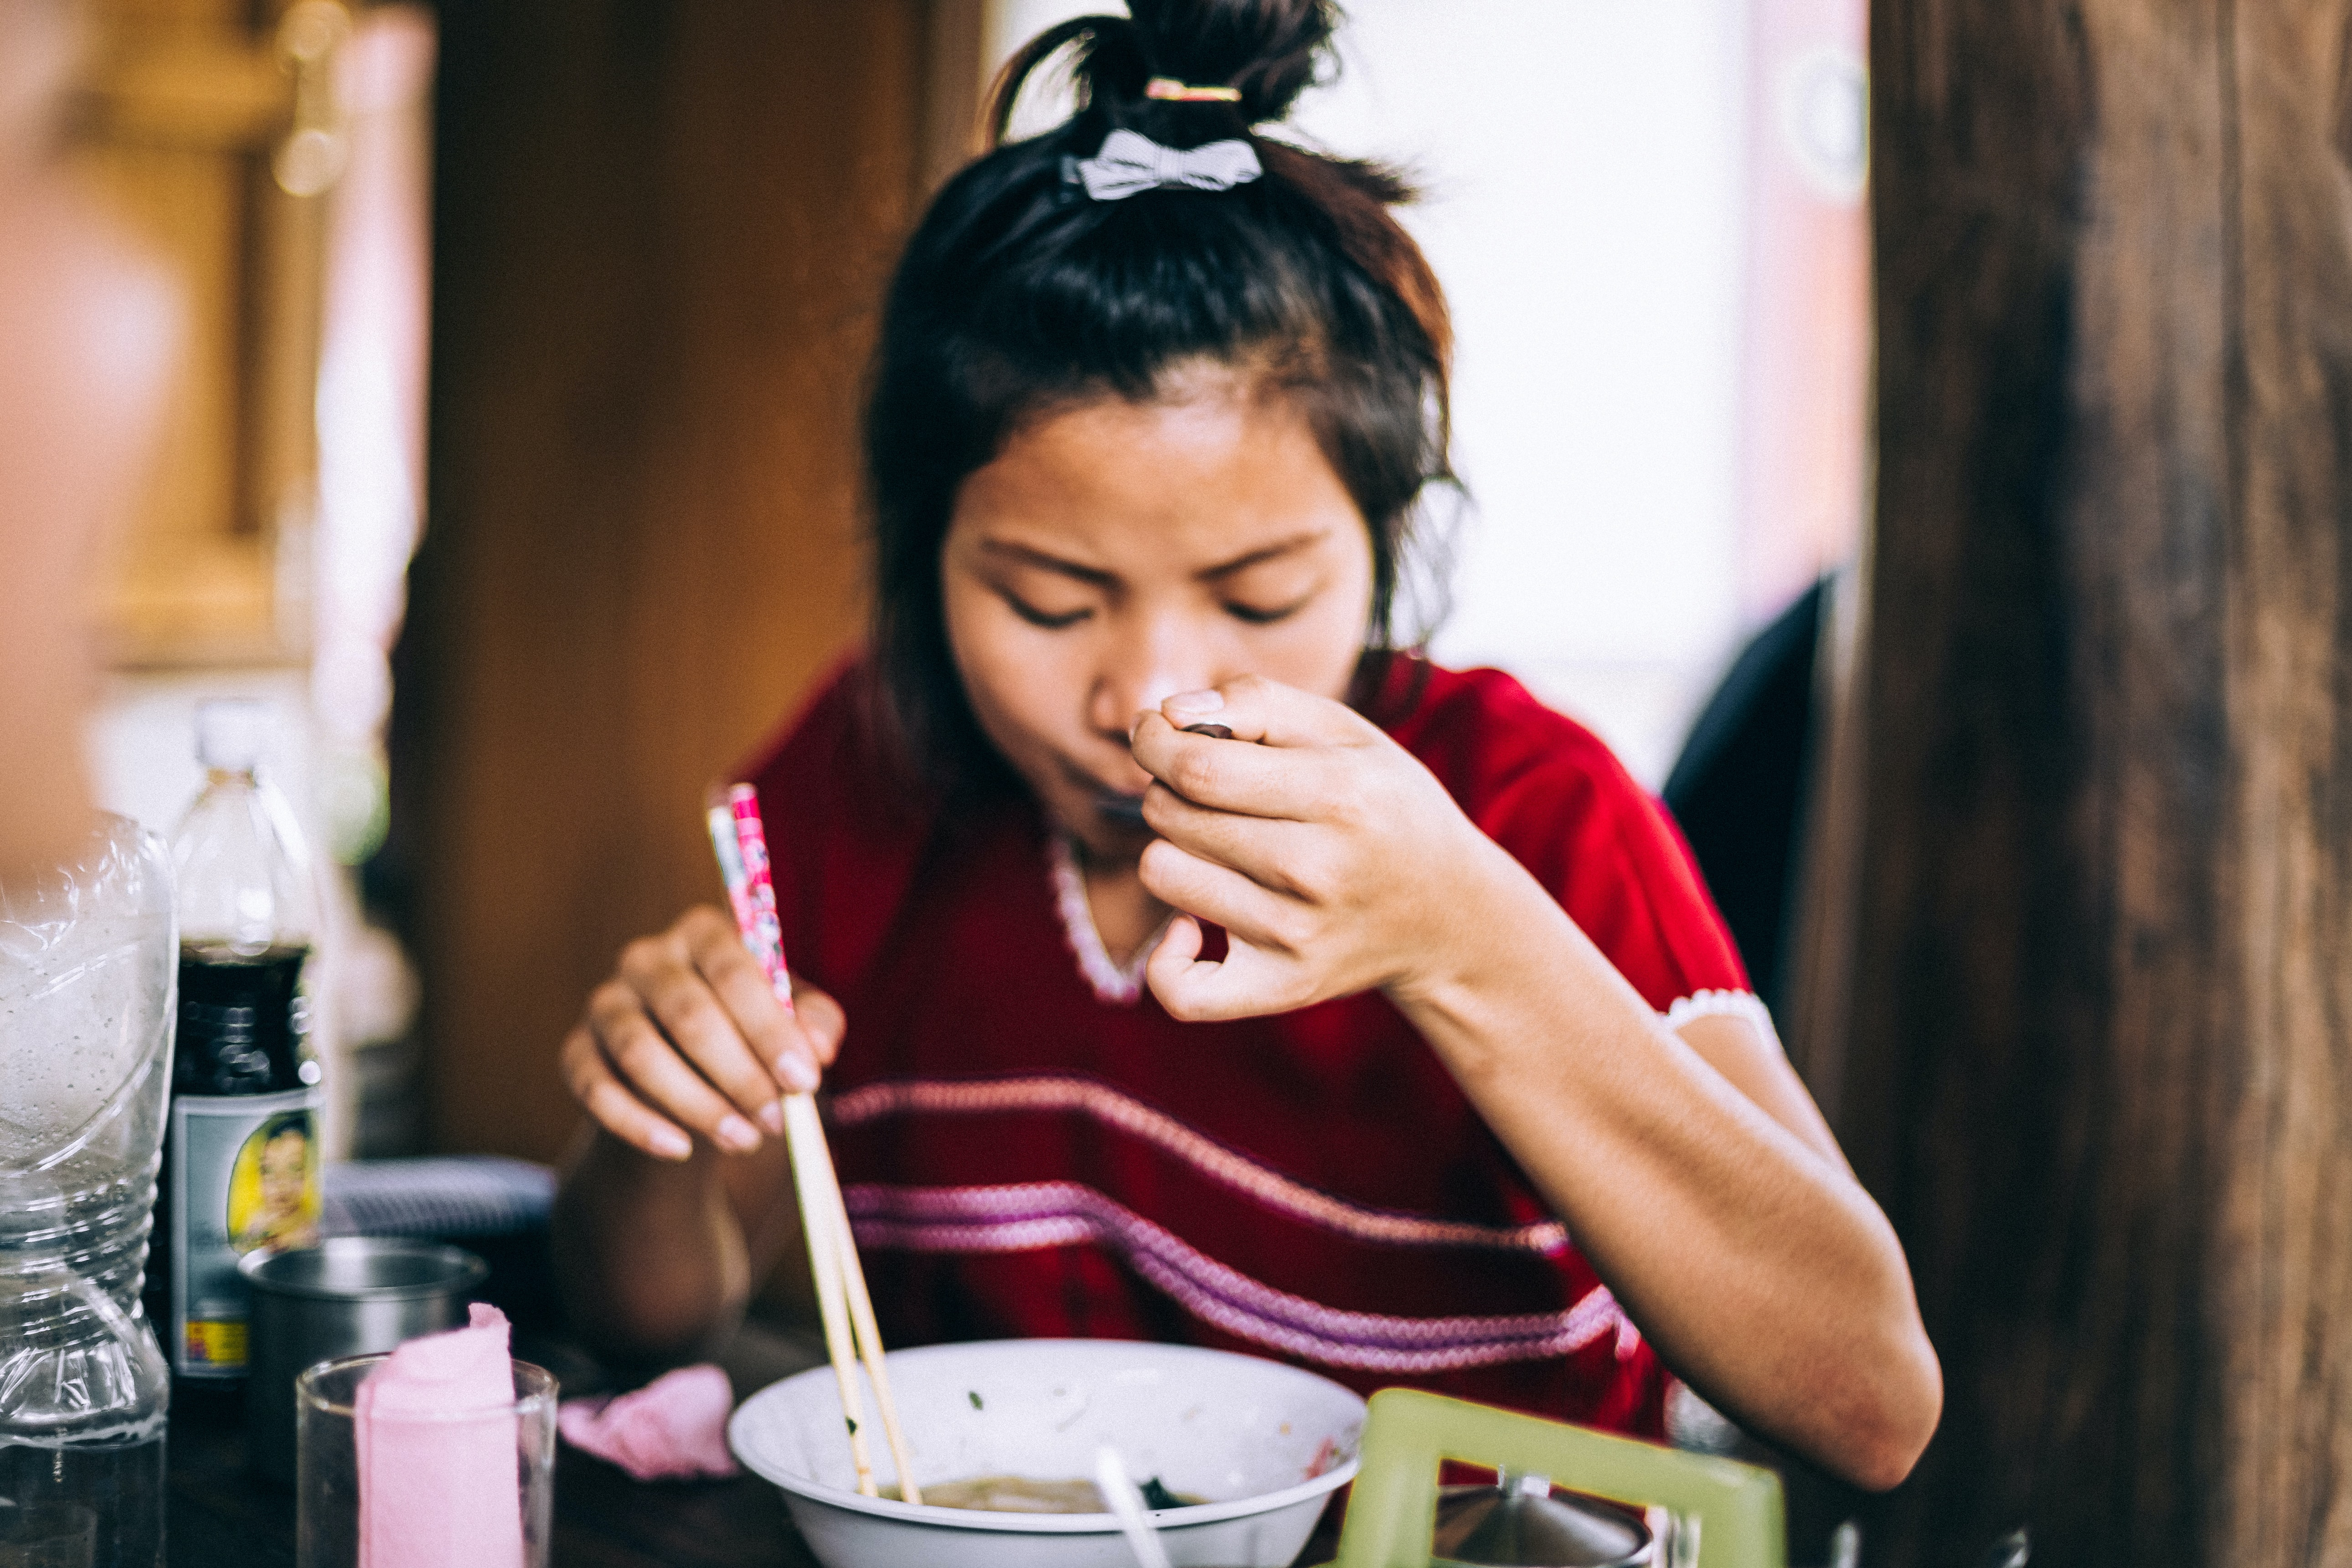 woman eating noodles while holding spoon and chopsticks